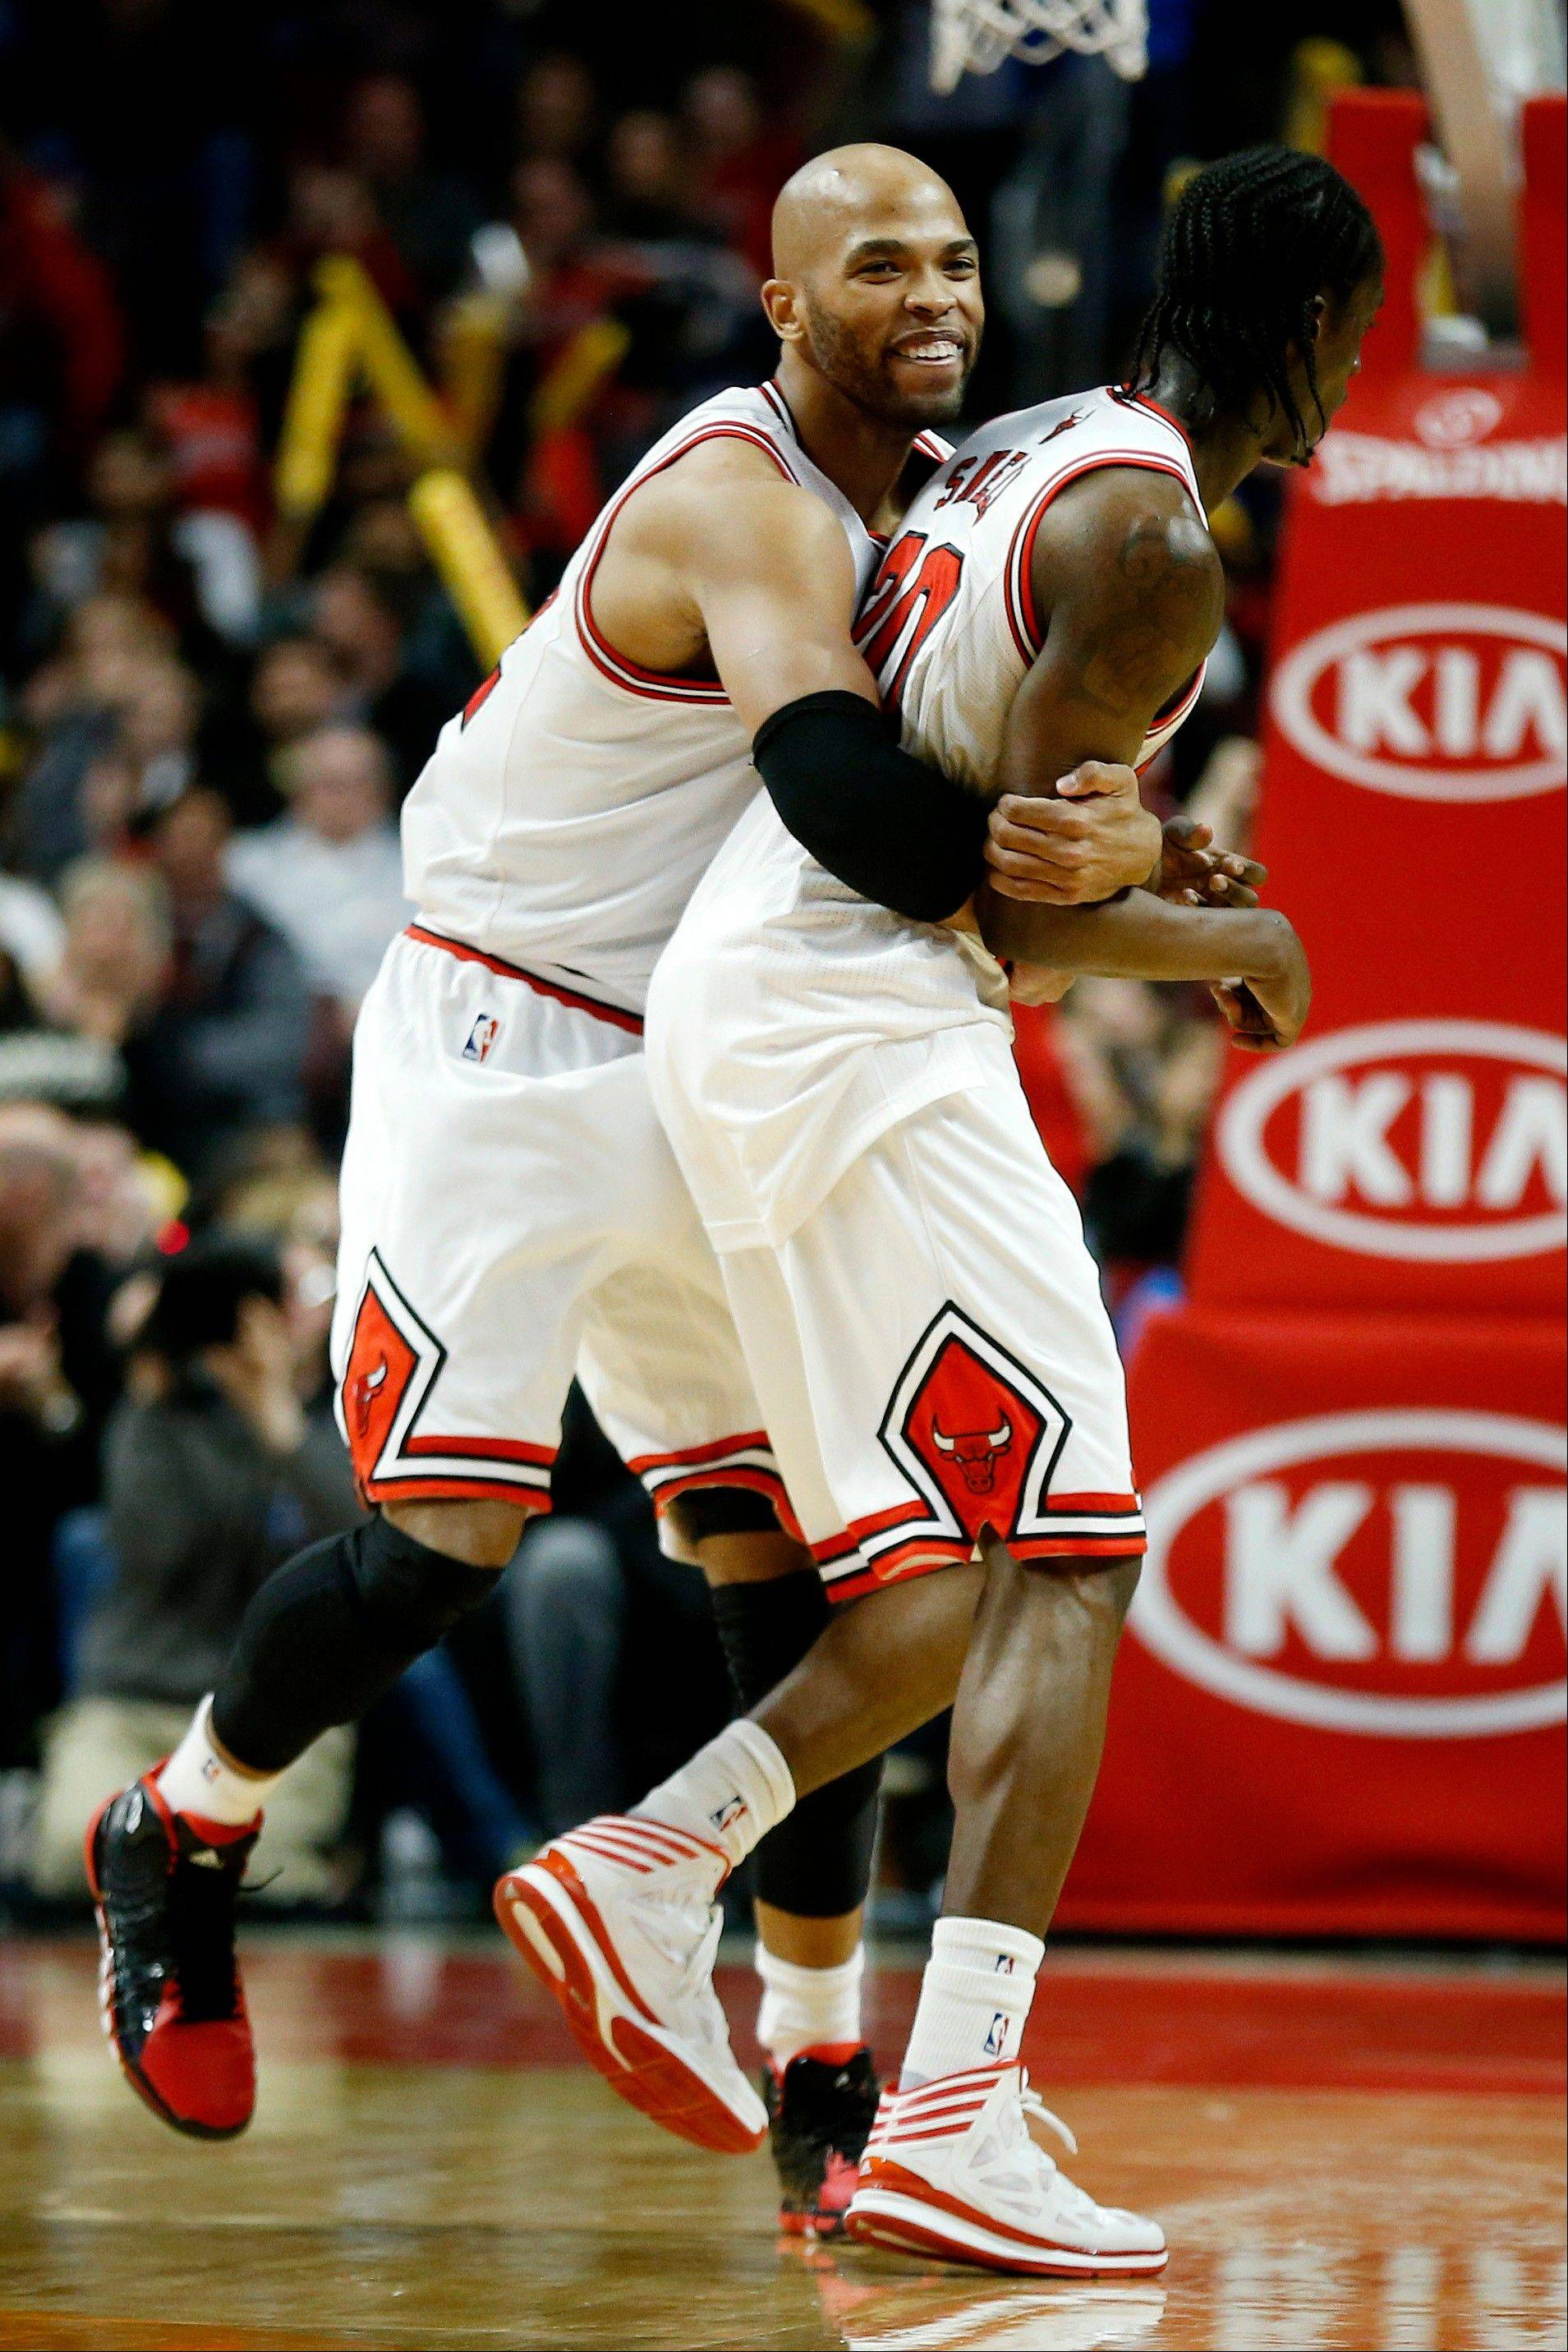 Bulls forward Taj Gibson, left, celebrates with Tony Snell, right, after Snell scored a 3-pointer during the second Saturday night at the United Center.